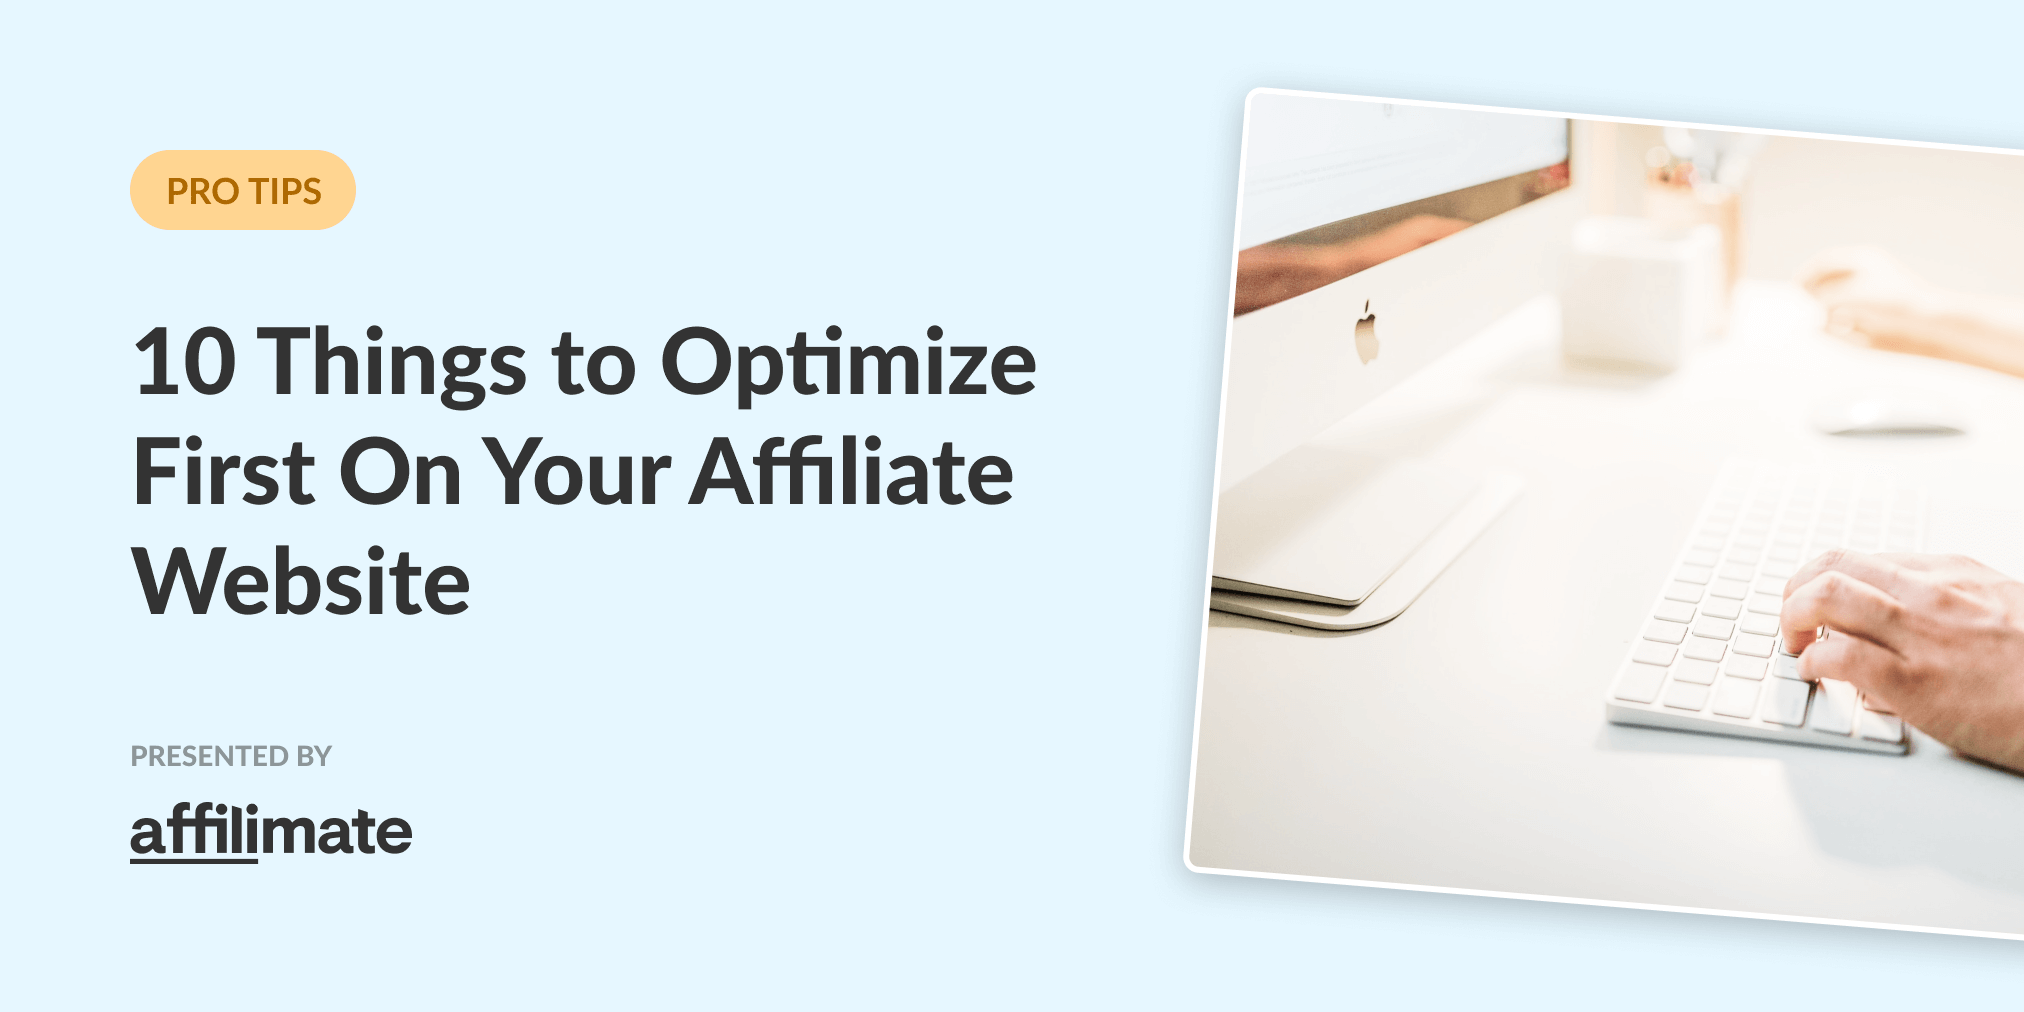 10 things to optimize first on your affiliate website